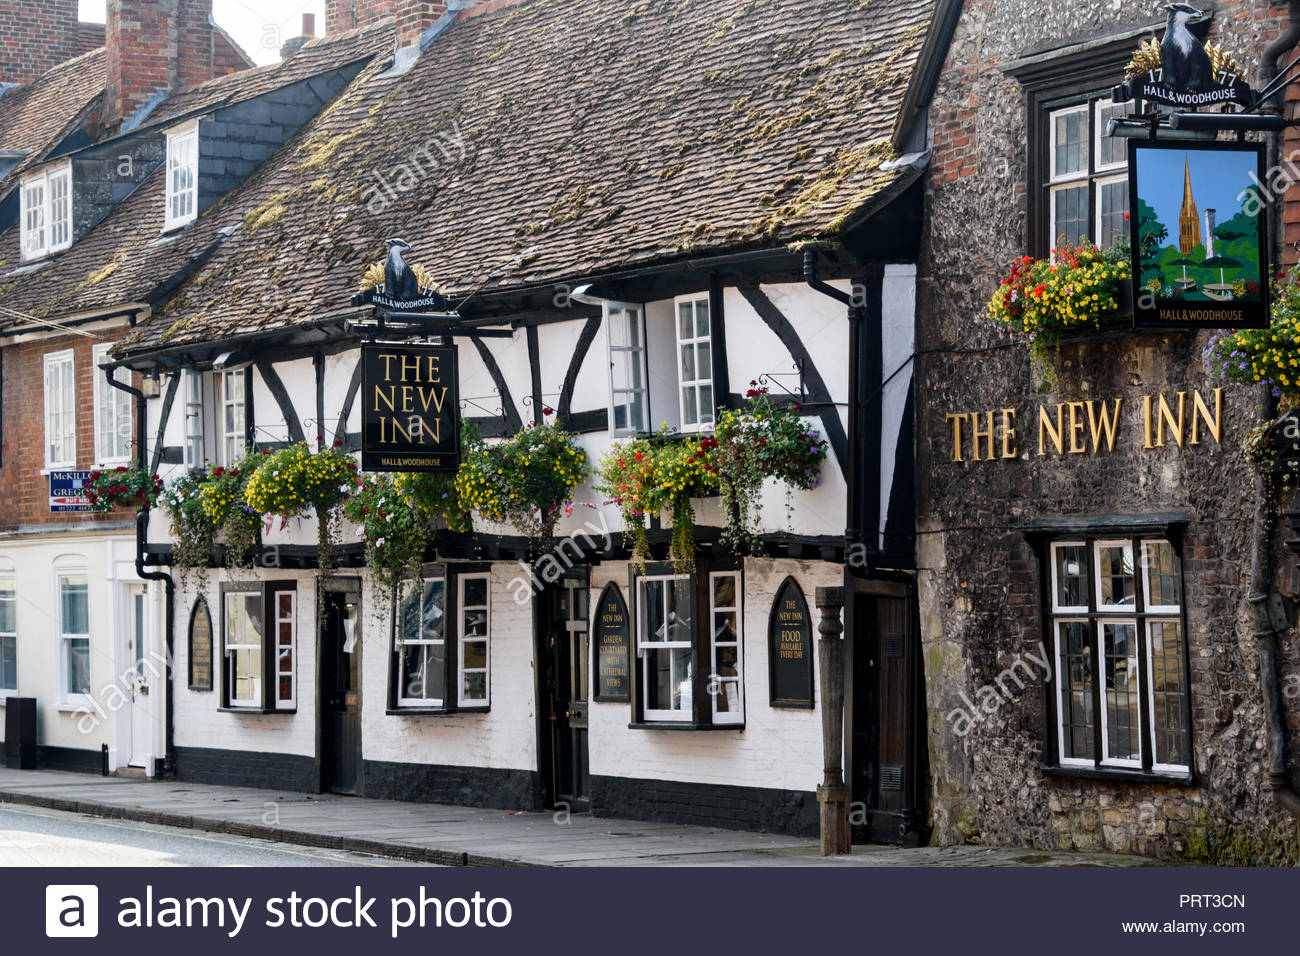 The New Inn, an historic Hall and Woodhouse public house in Salisbury, Wiltshire, England, UK Stock Photo